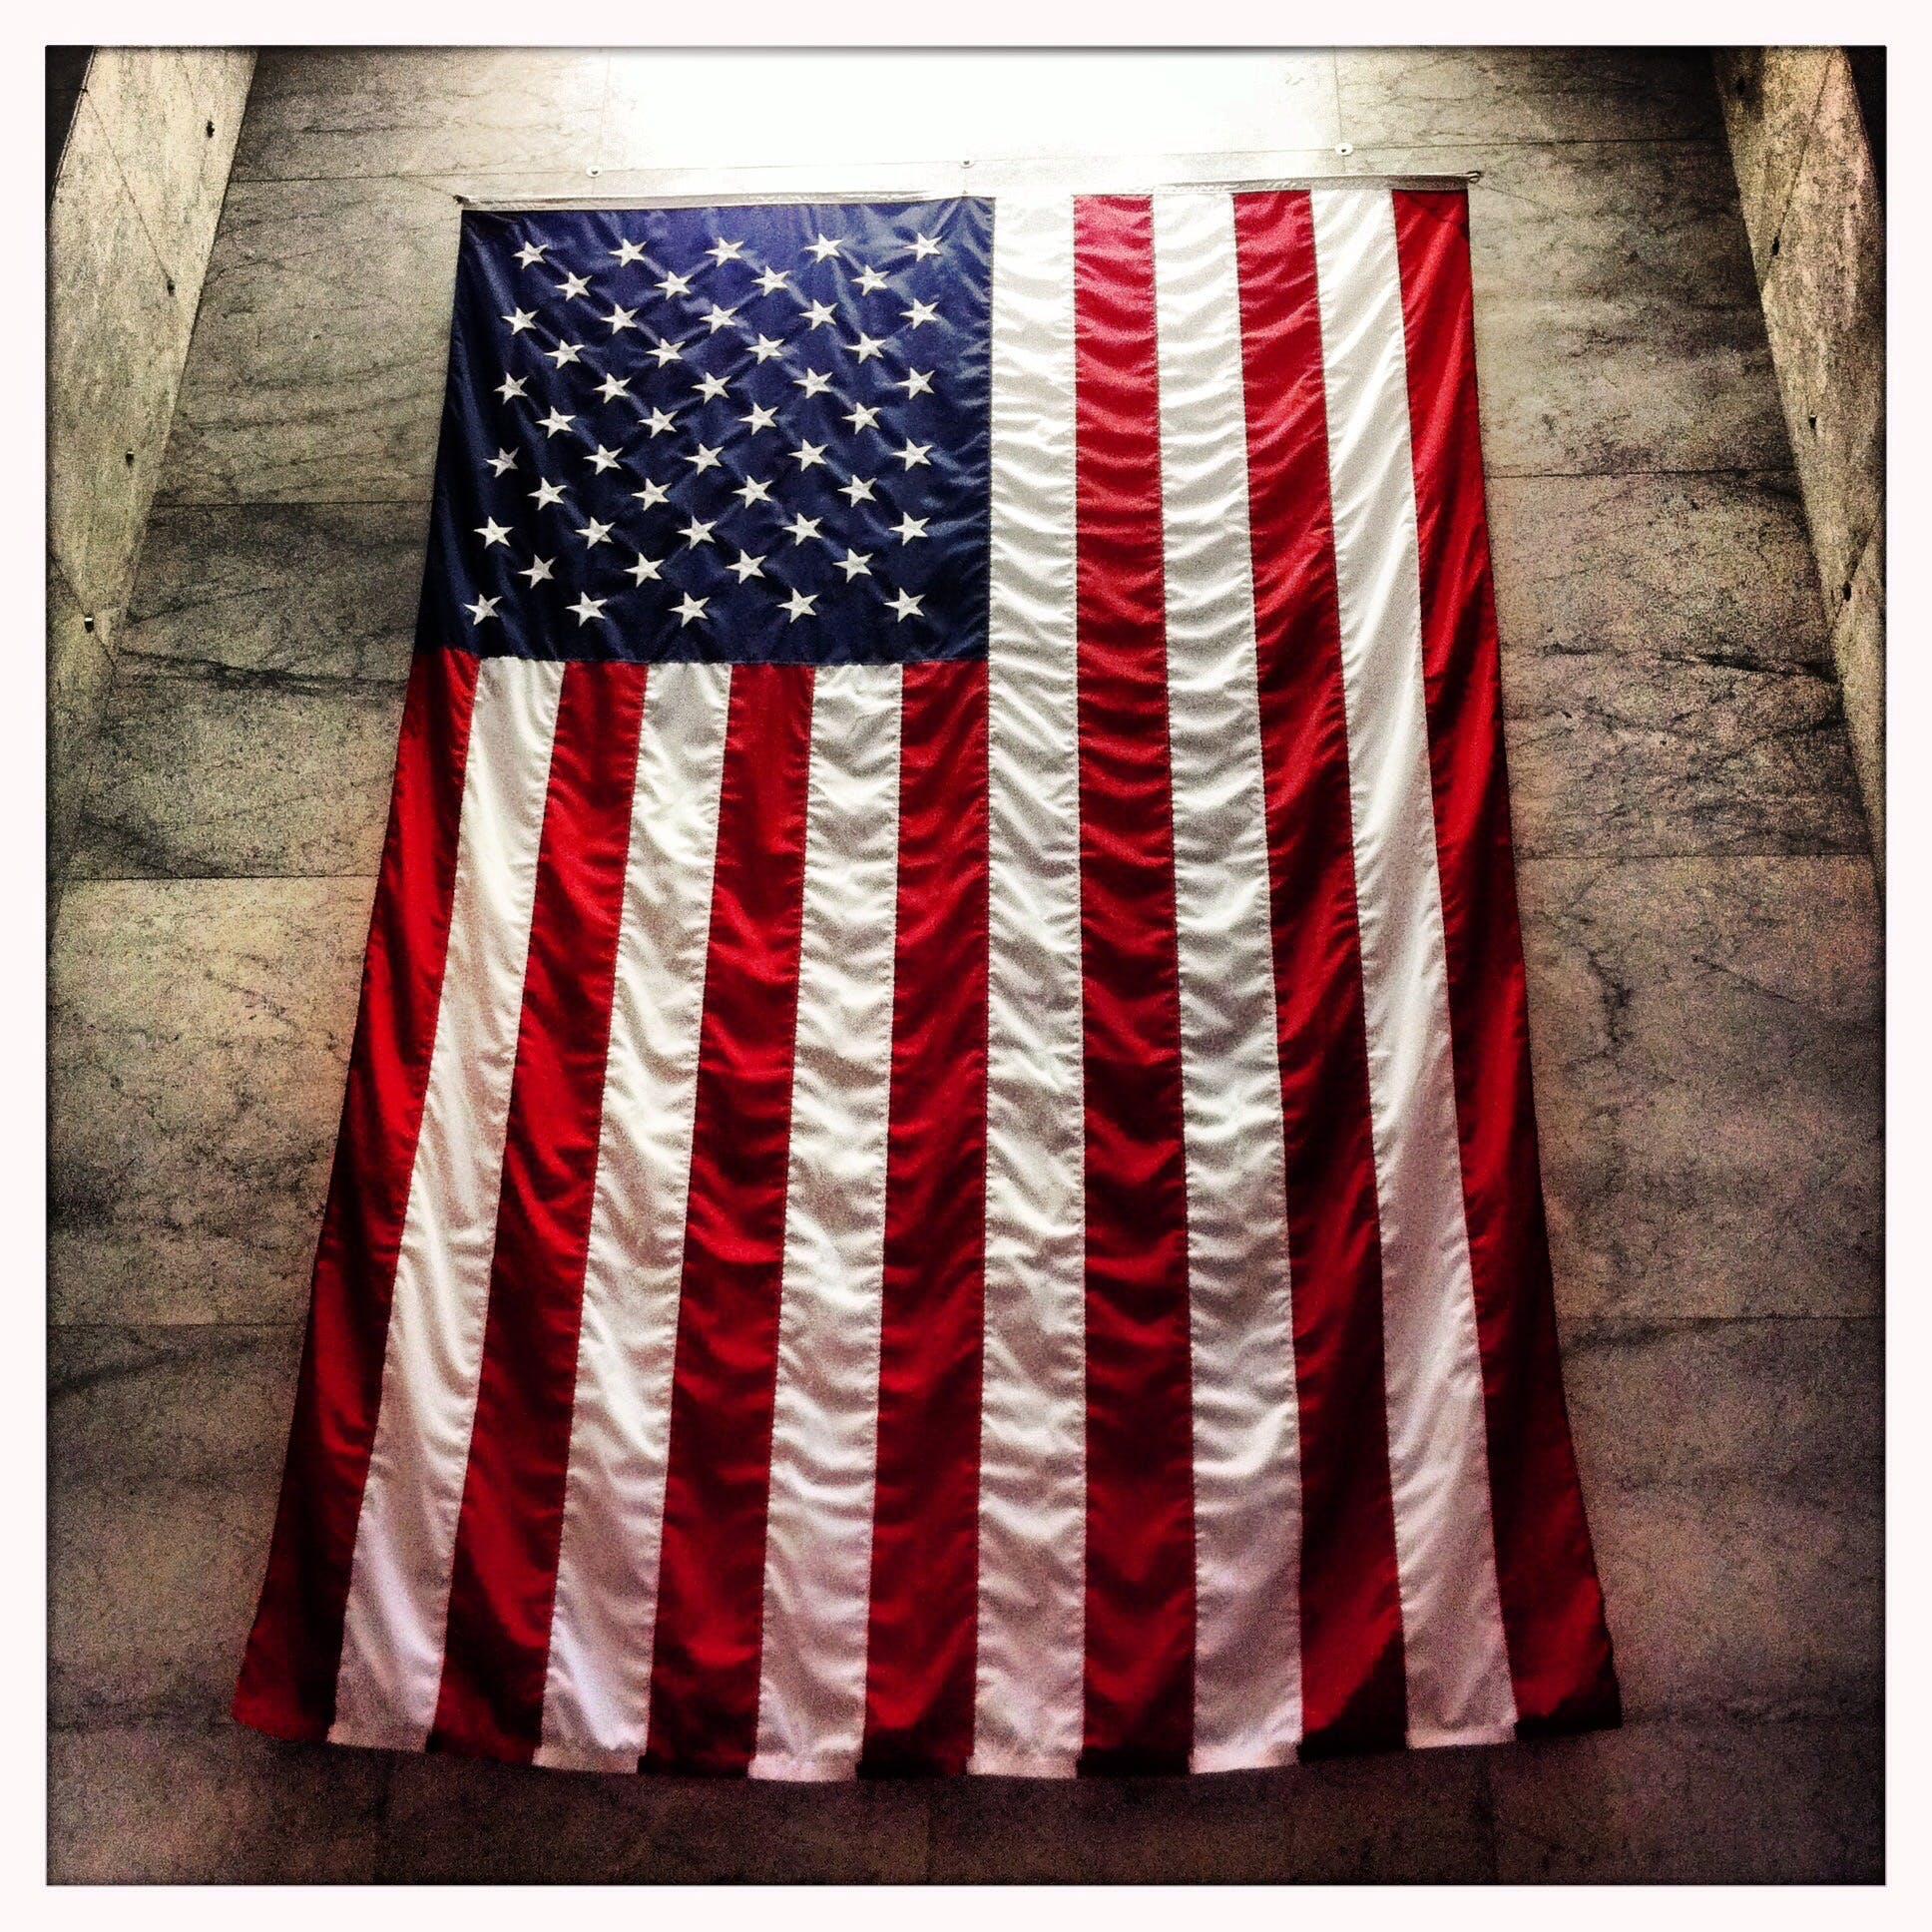 United States of America Flag Hanged on Wall